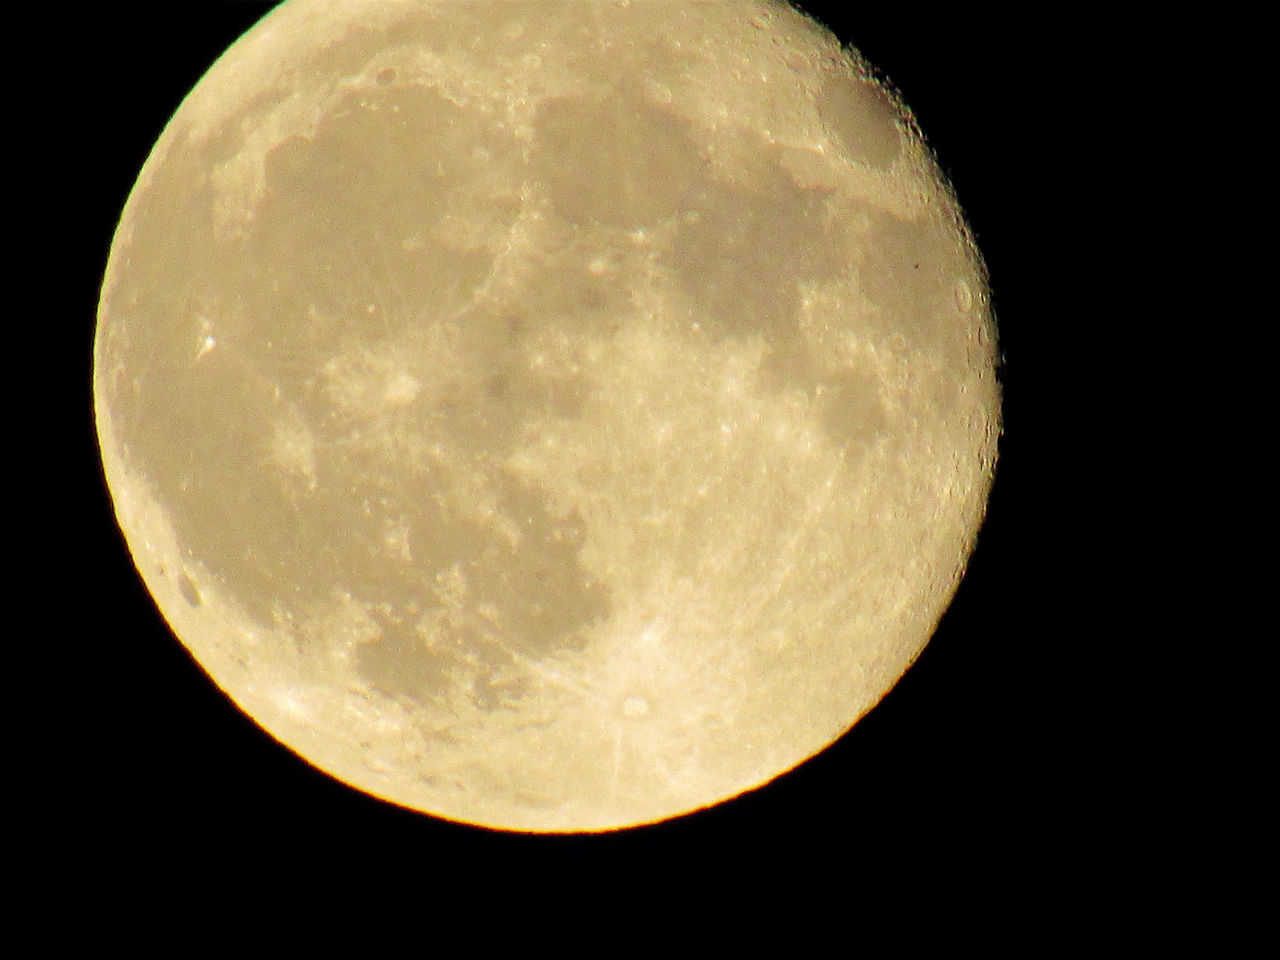 night, moon, astronomy, planetary moon, beauty in nature, moon surface, circle, majestic, nature, tranquility, scenics, no people, close-up, space exploration, space, outdoors, clear sky, half moon, sky, satellite view